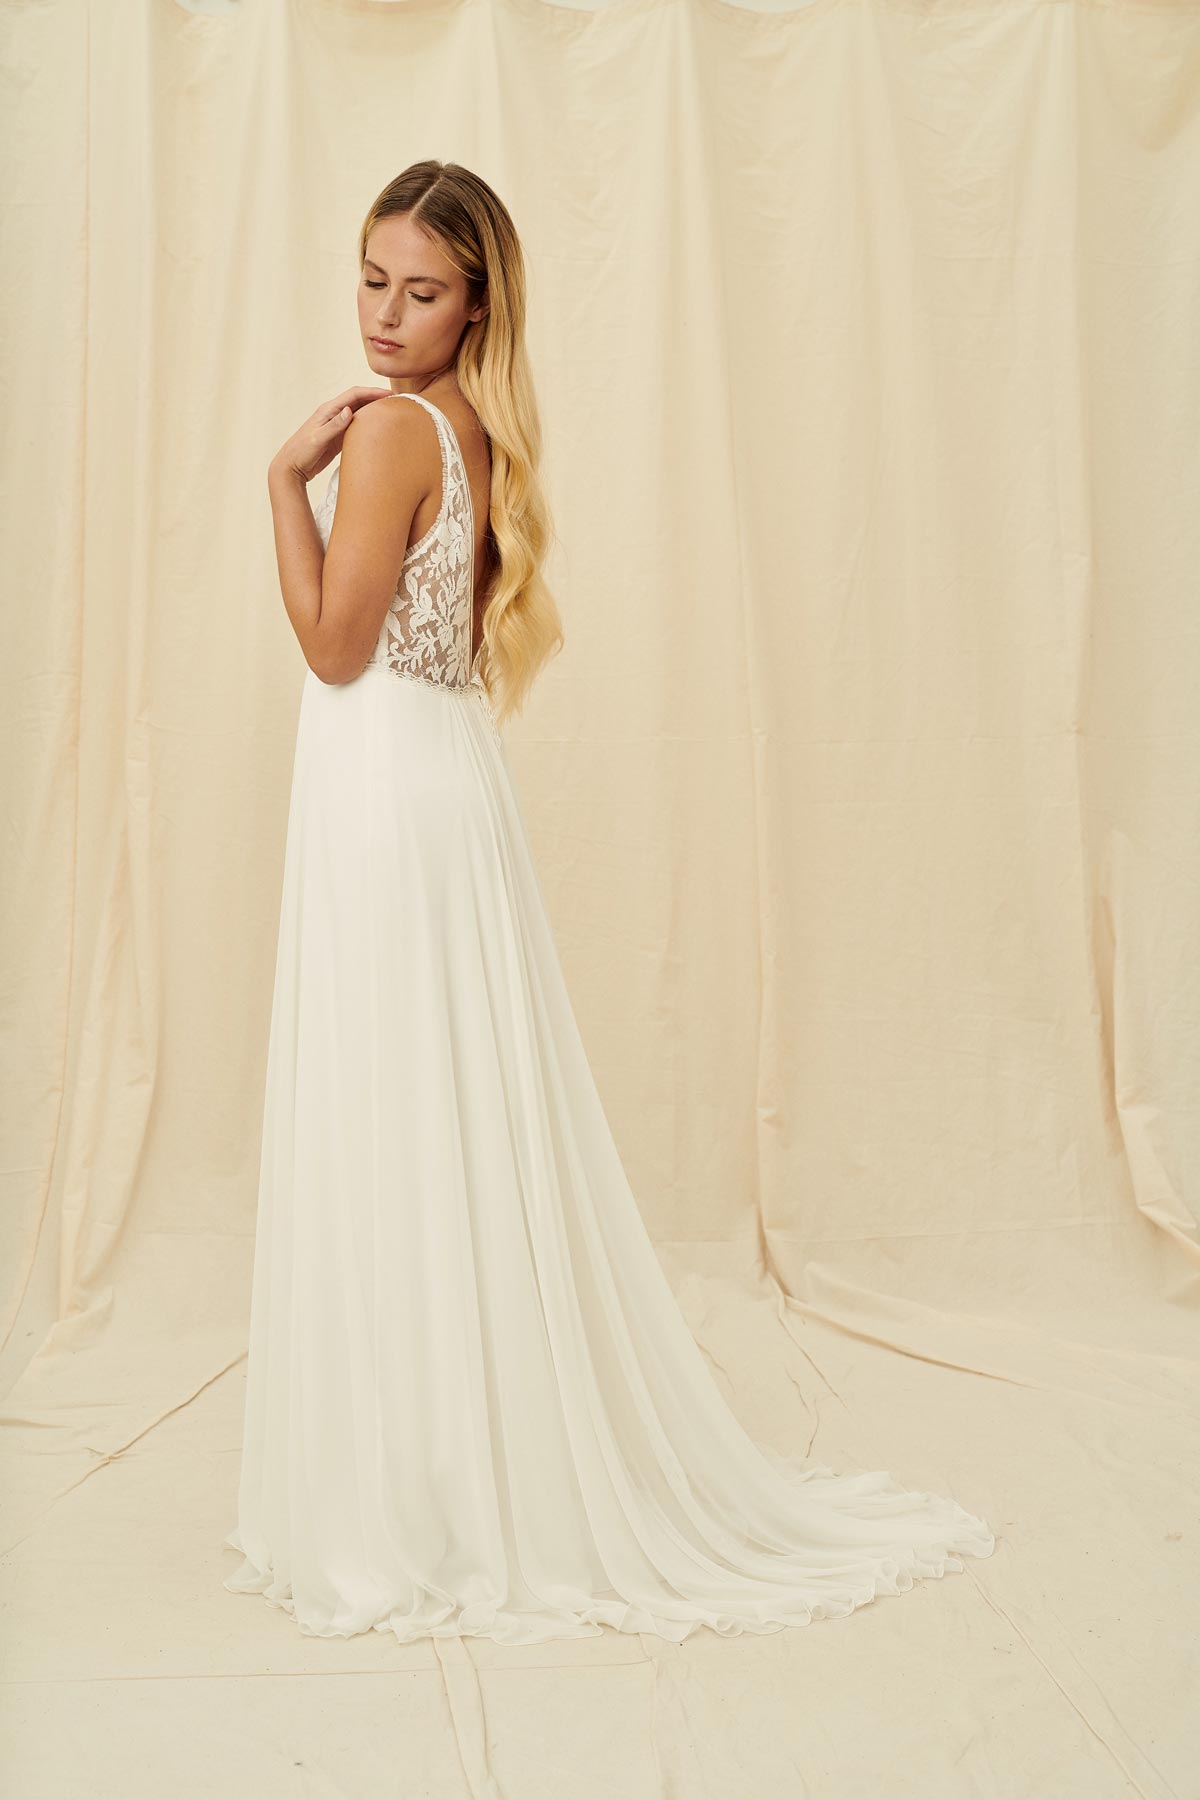 An elegant wedding gown with a deep v bodice and sheer lacy open back, gathered skirt and train